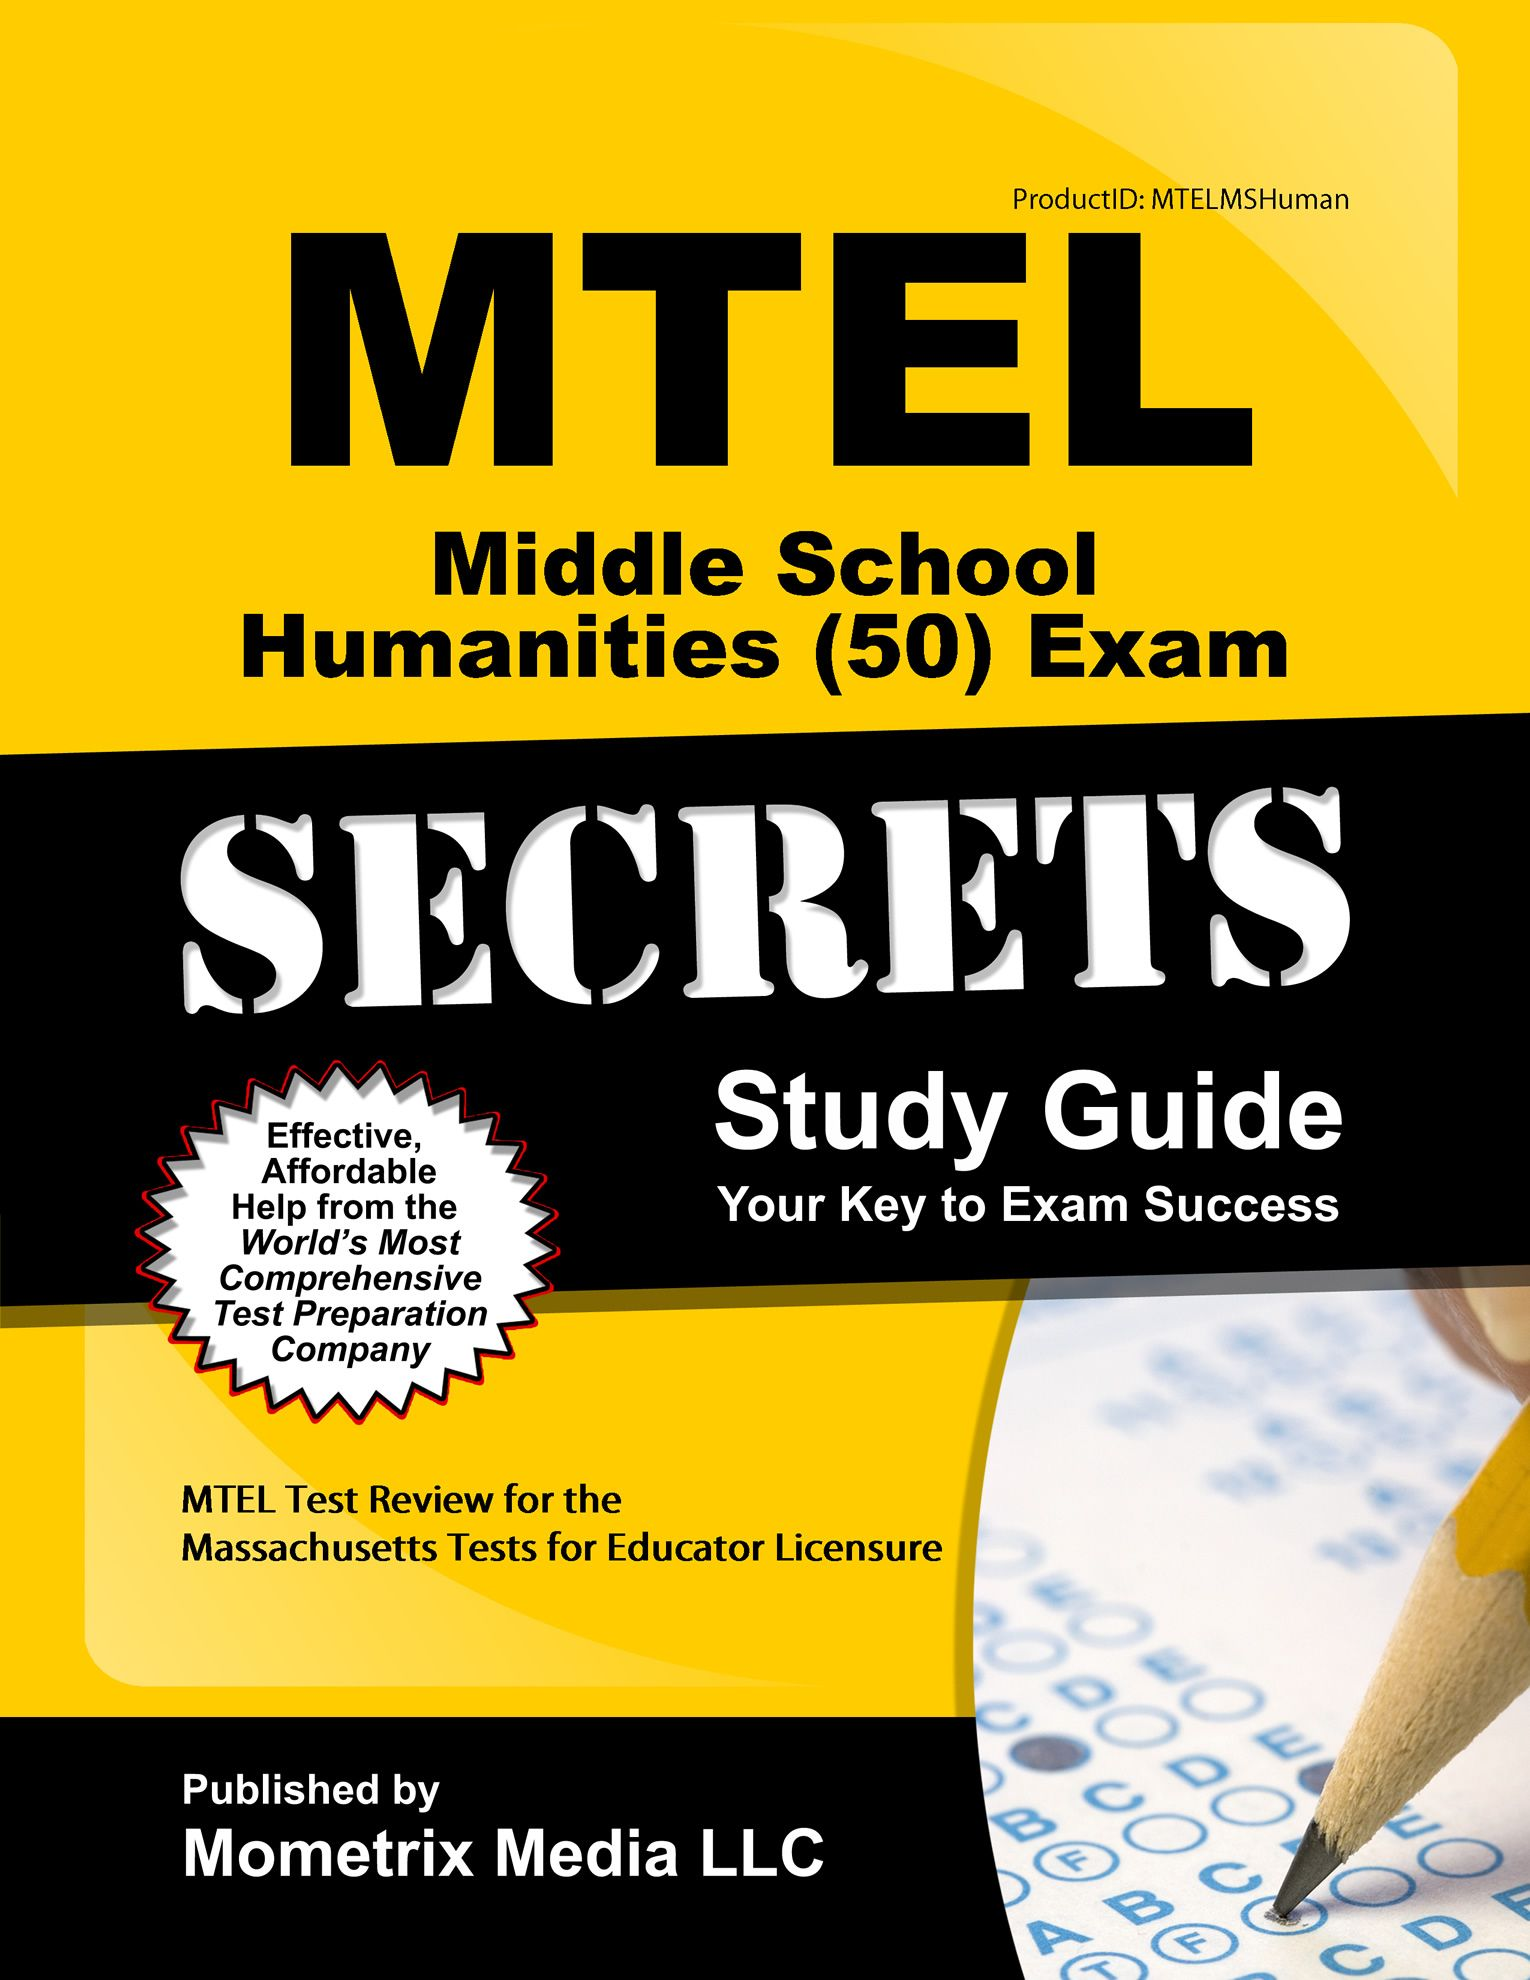 Mtel middle school humanities 50 exam study guide httpmo our comprehensive study guide for the ncidq test is written by our ncidq test experts who painstakingly researched the topics and the concepts that you 1betcityfo Choice Image